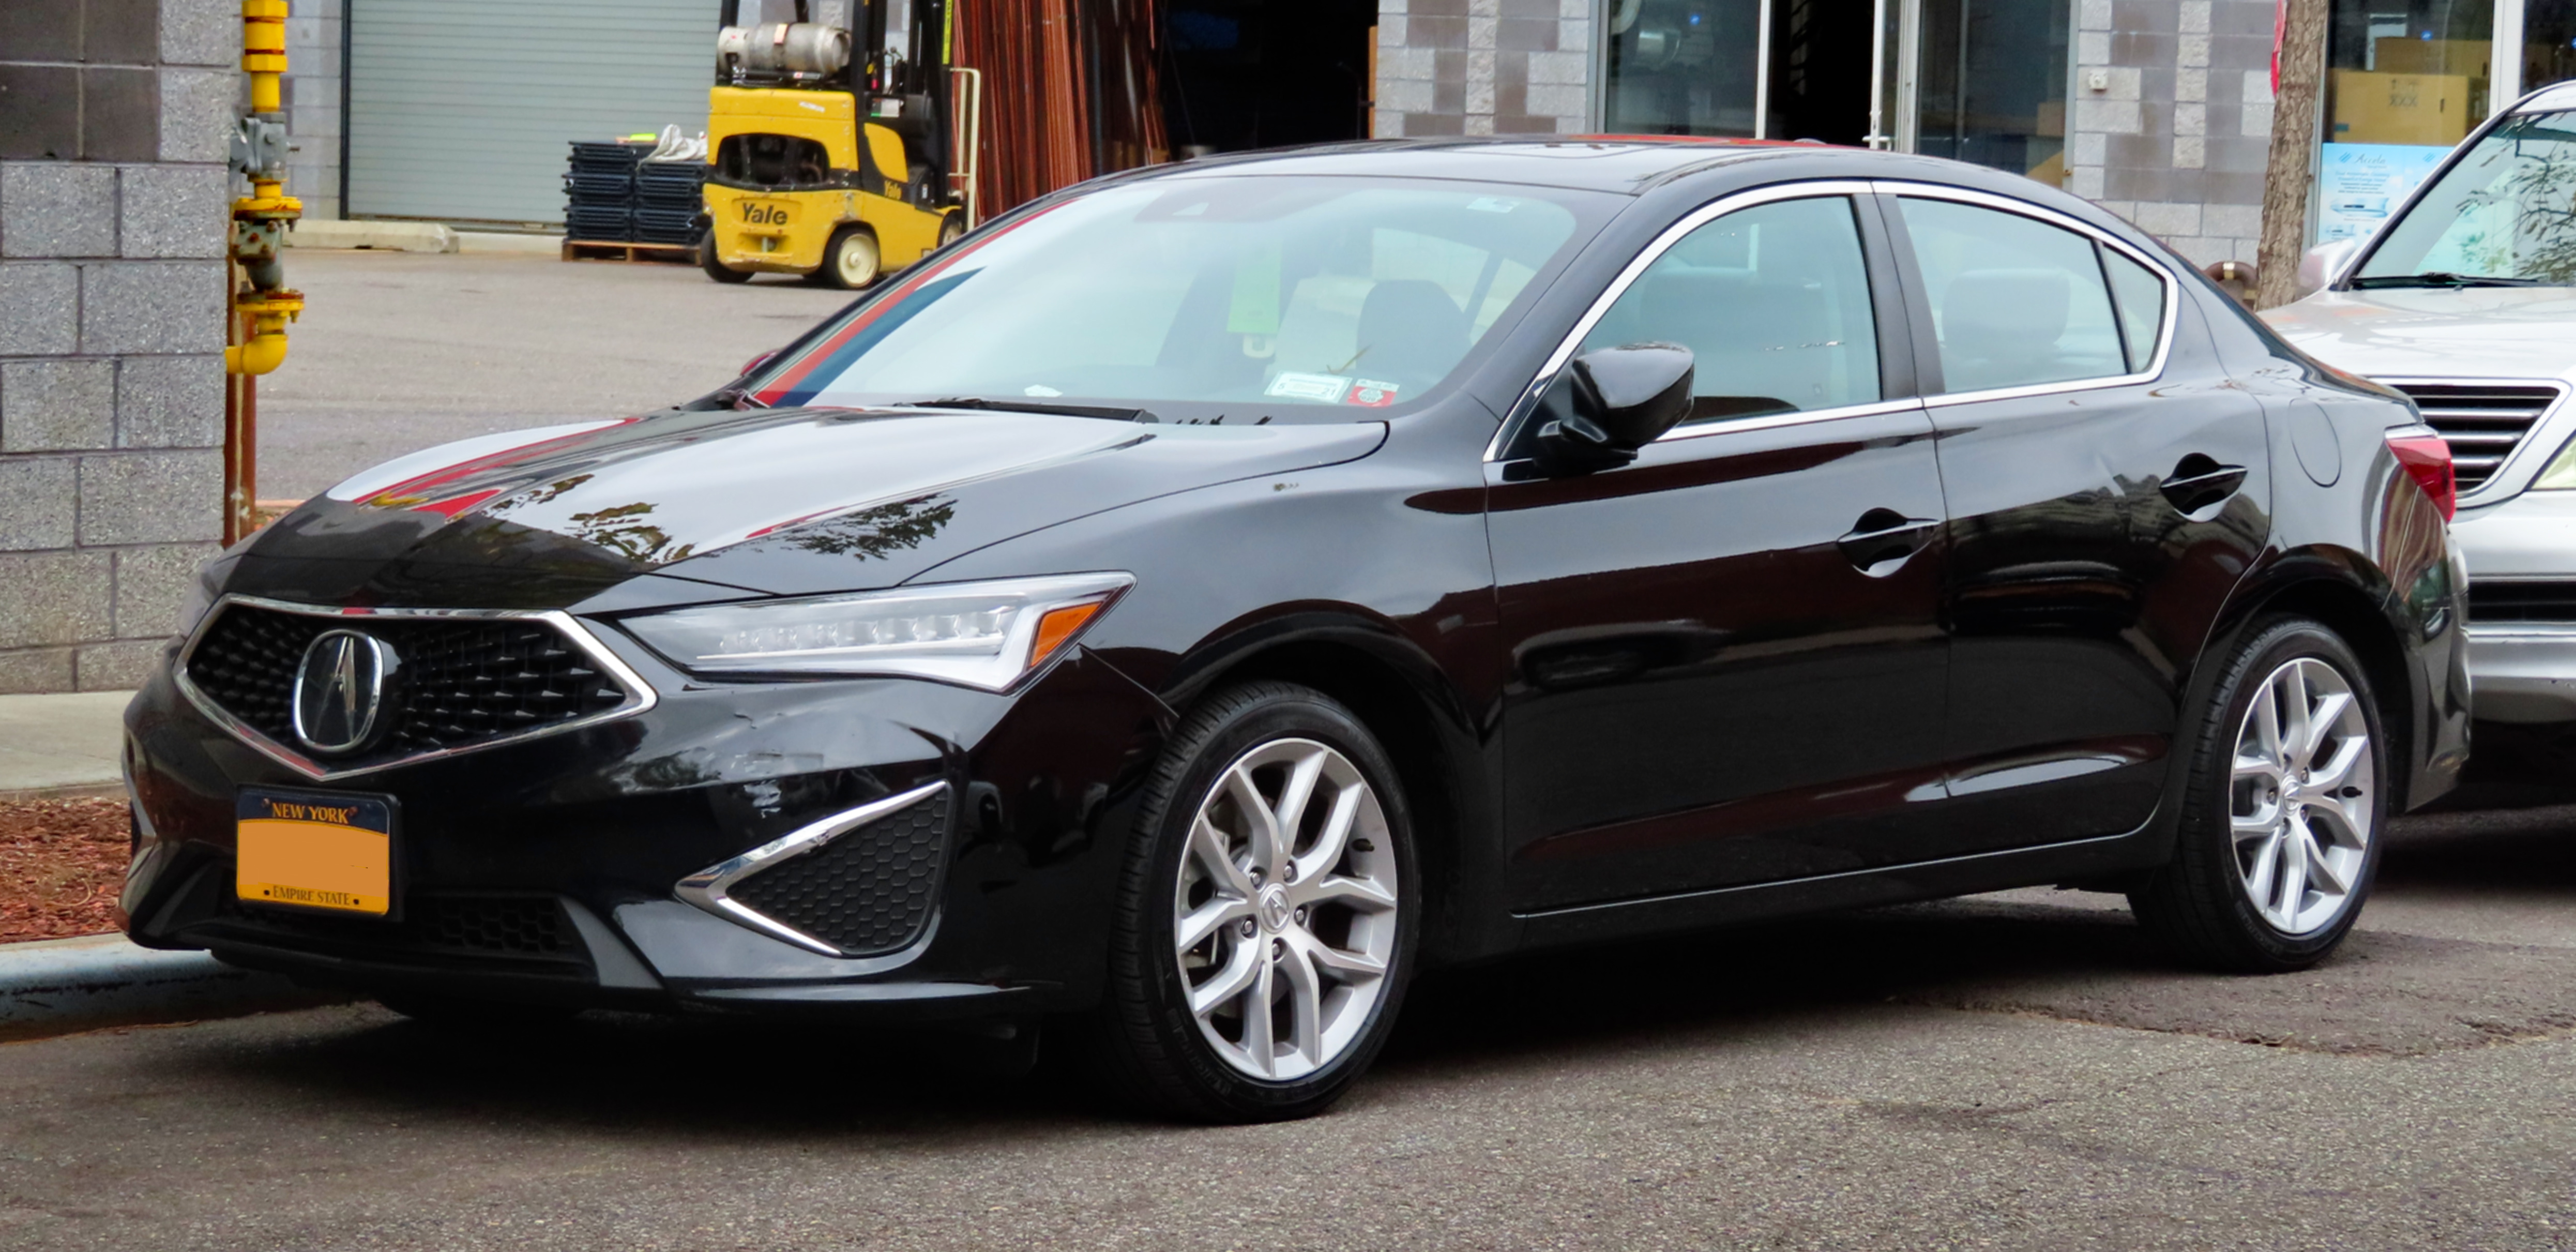 File:2019 Acura ILX 2.4L Base, Front 10.11.19.jpg